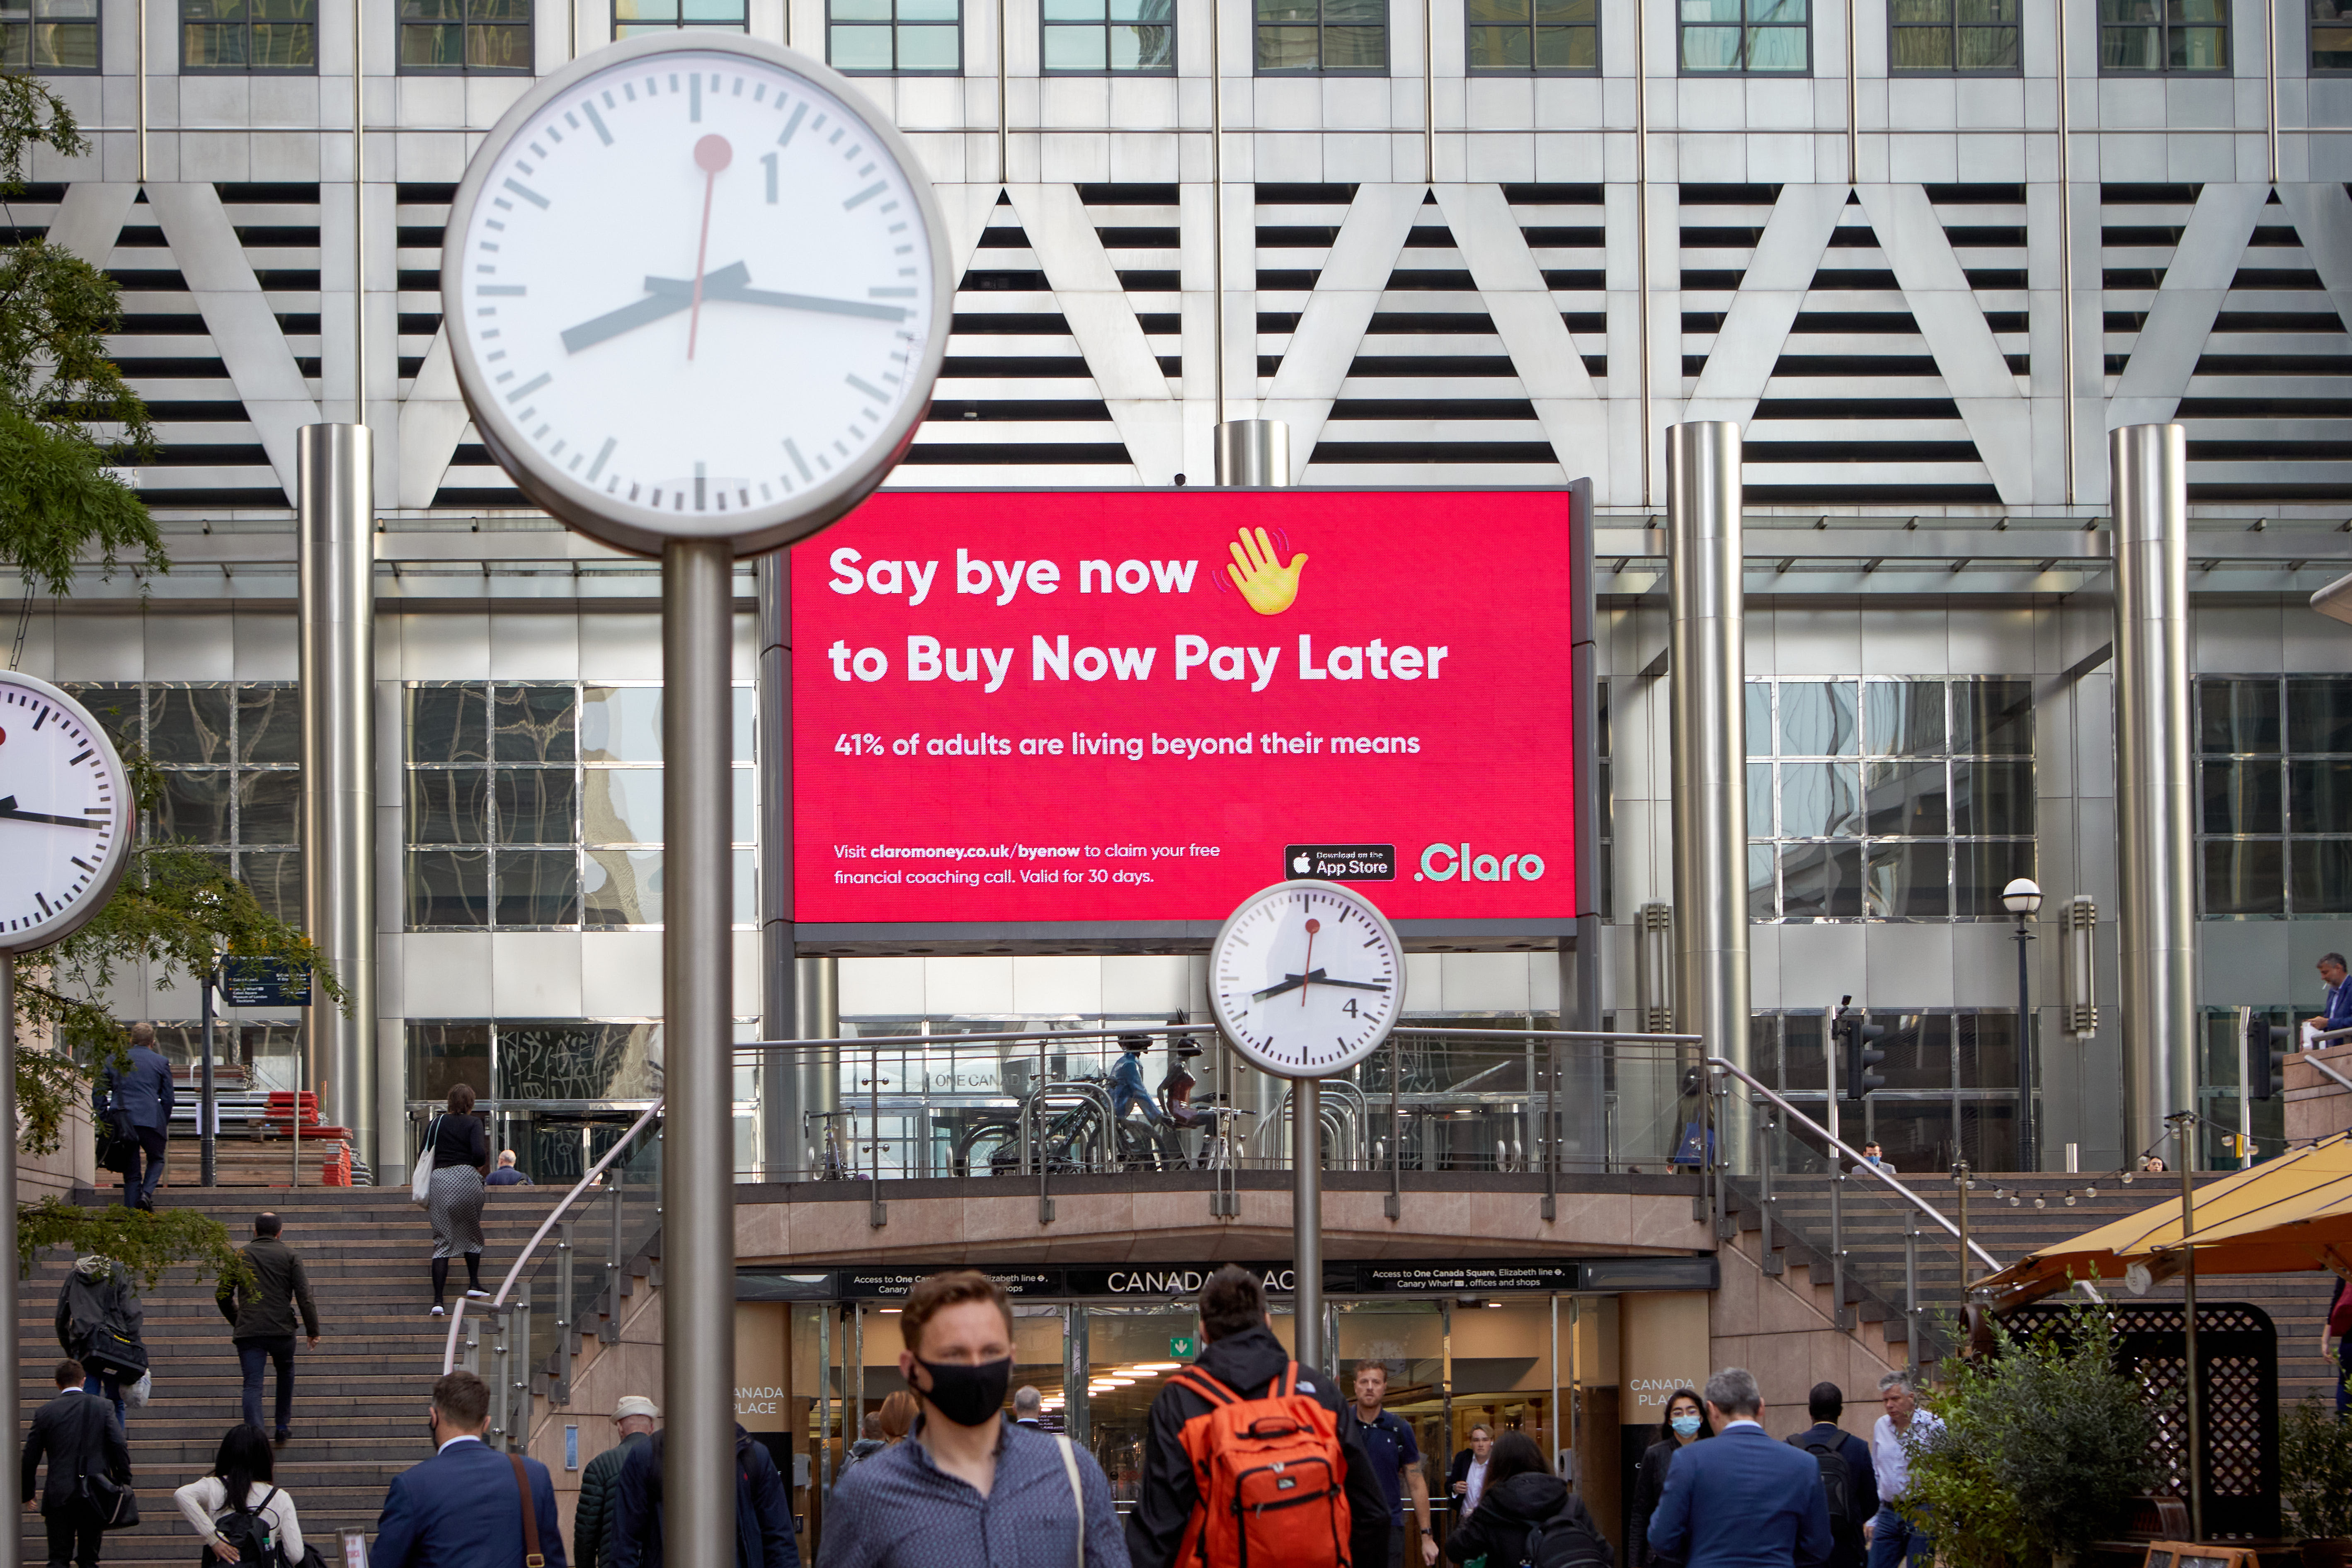 Claro Encourages Brits to Reduce 'buy Now, Pay Later' Reliance in Exchange for Free Financial Coaching